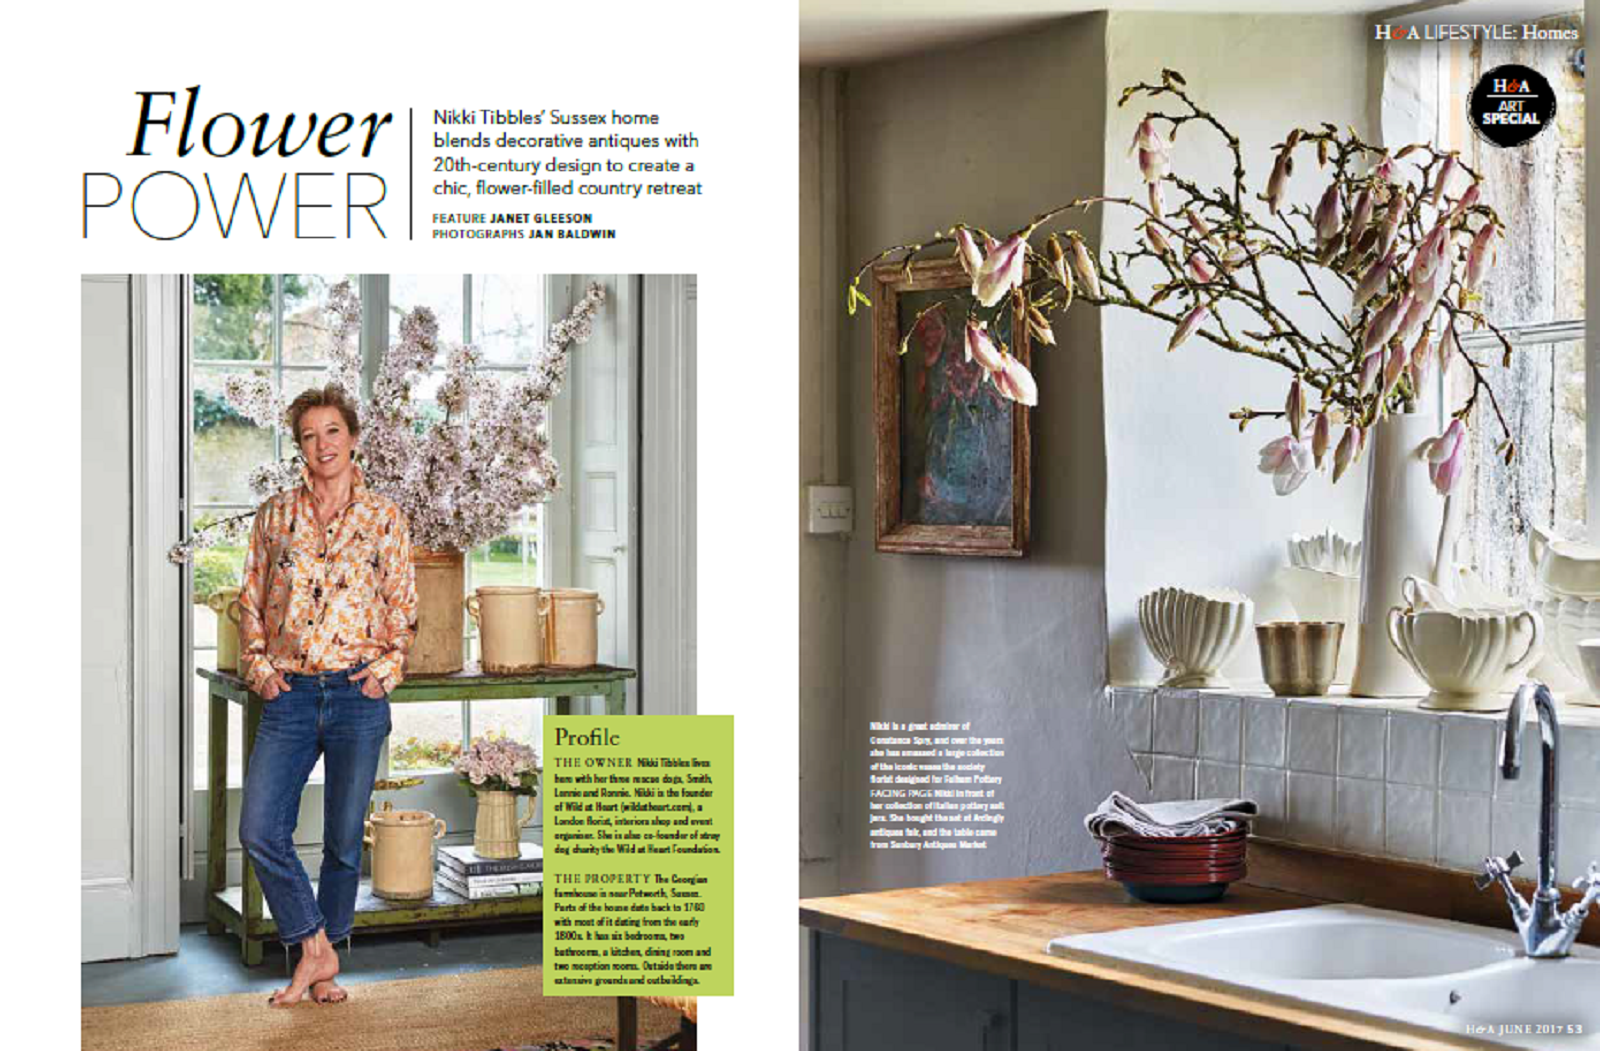 At Home with Nikki, Homes & Antiques Magazine